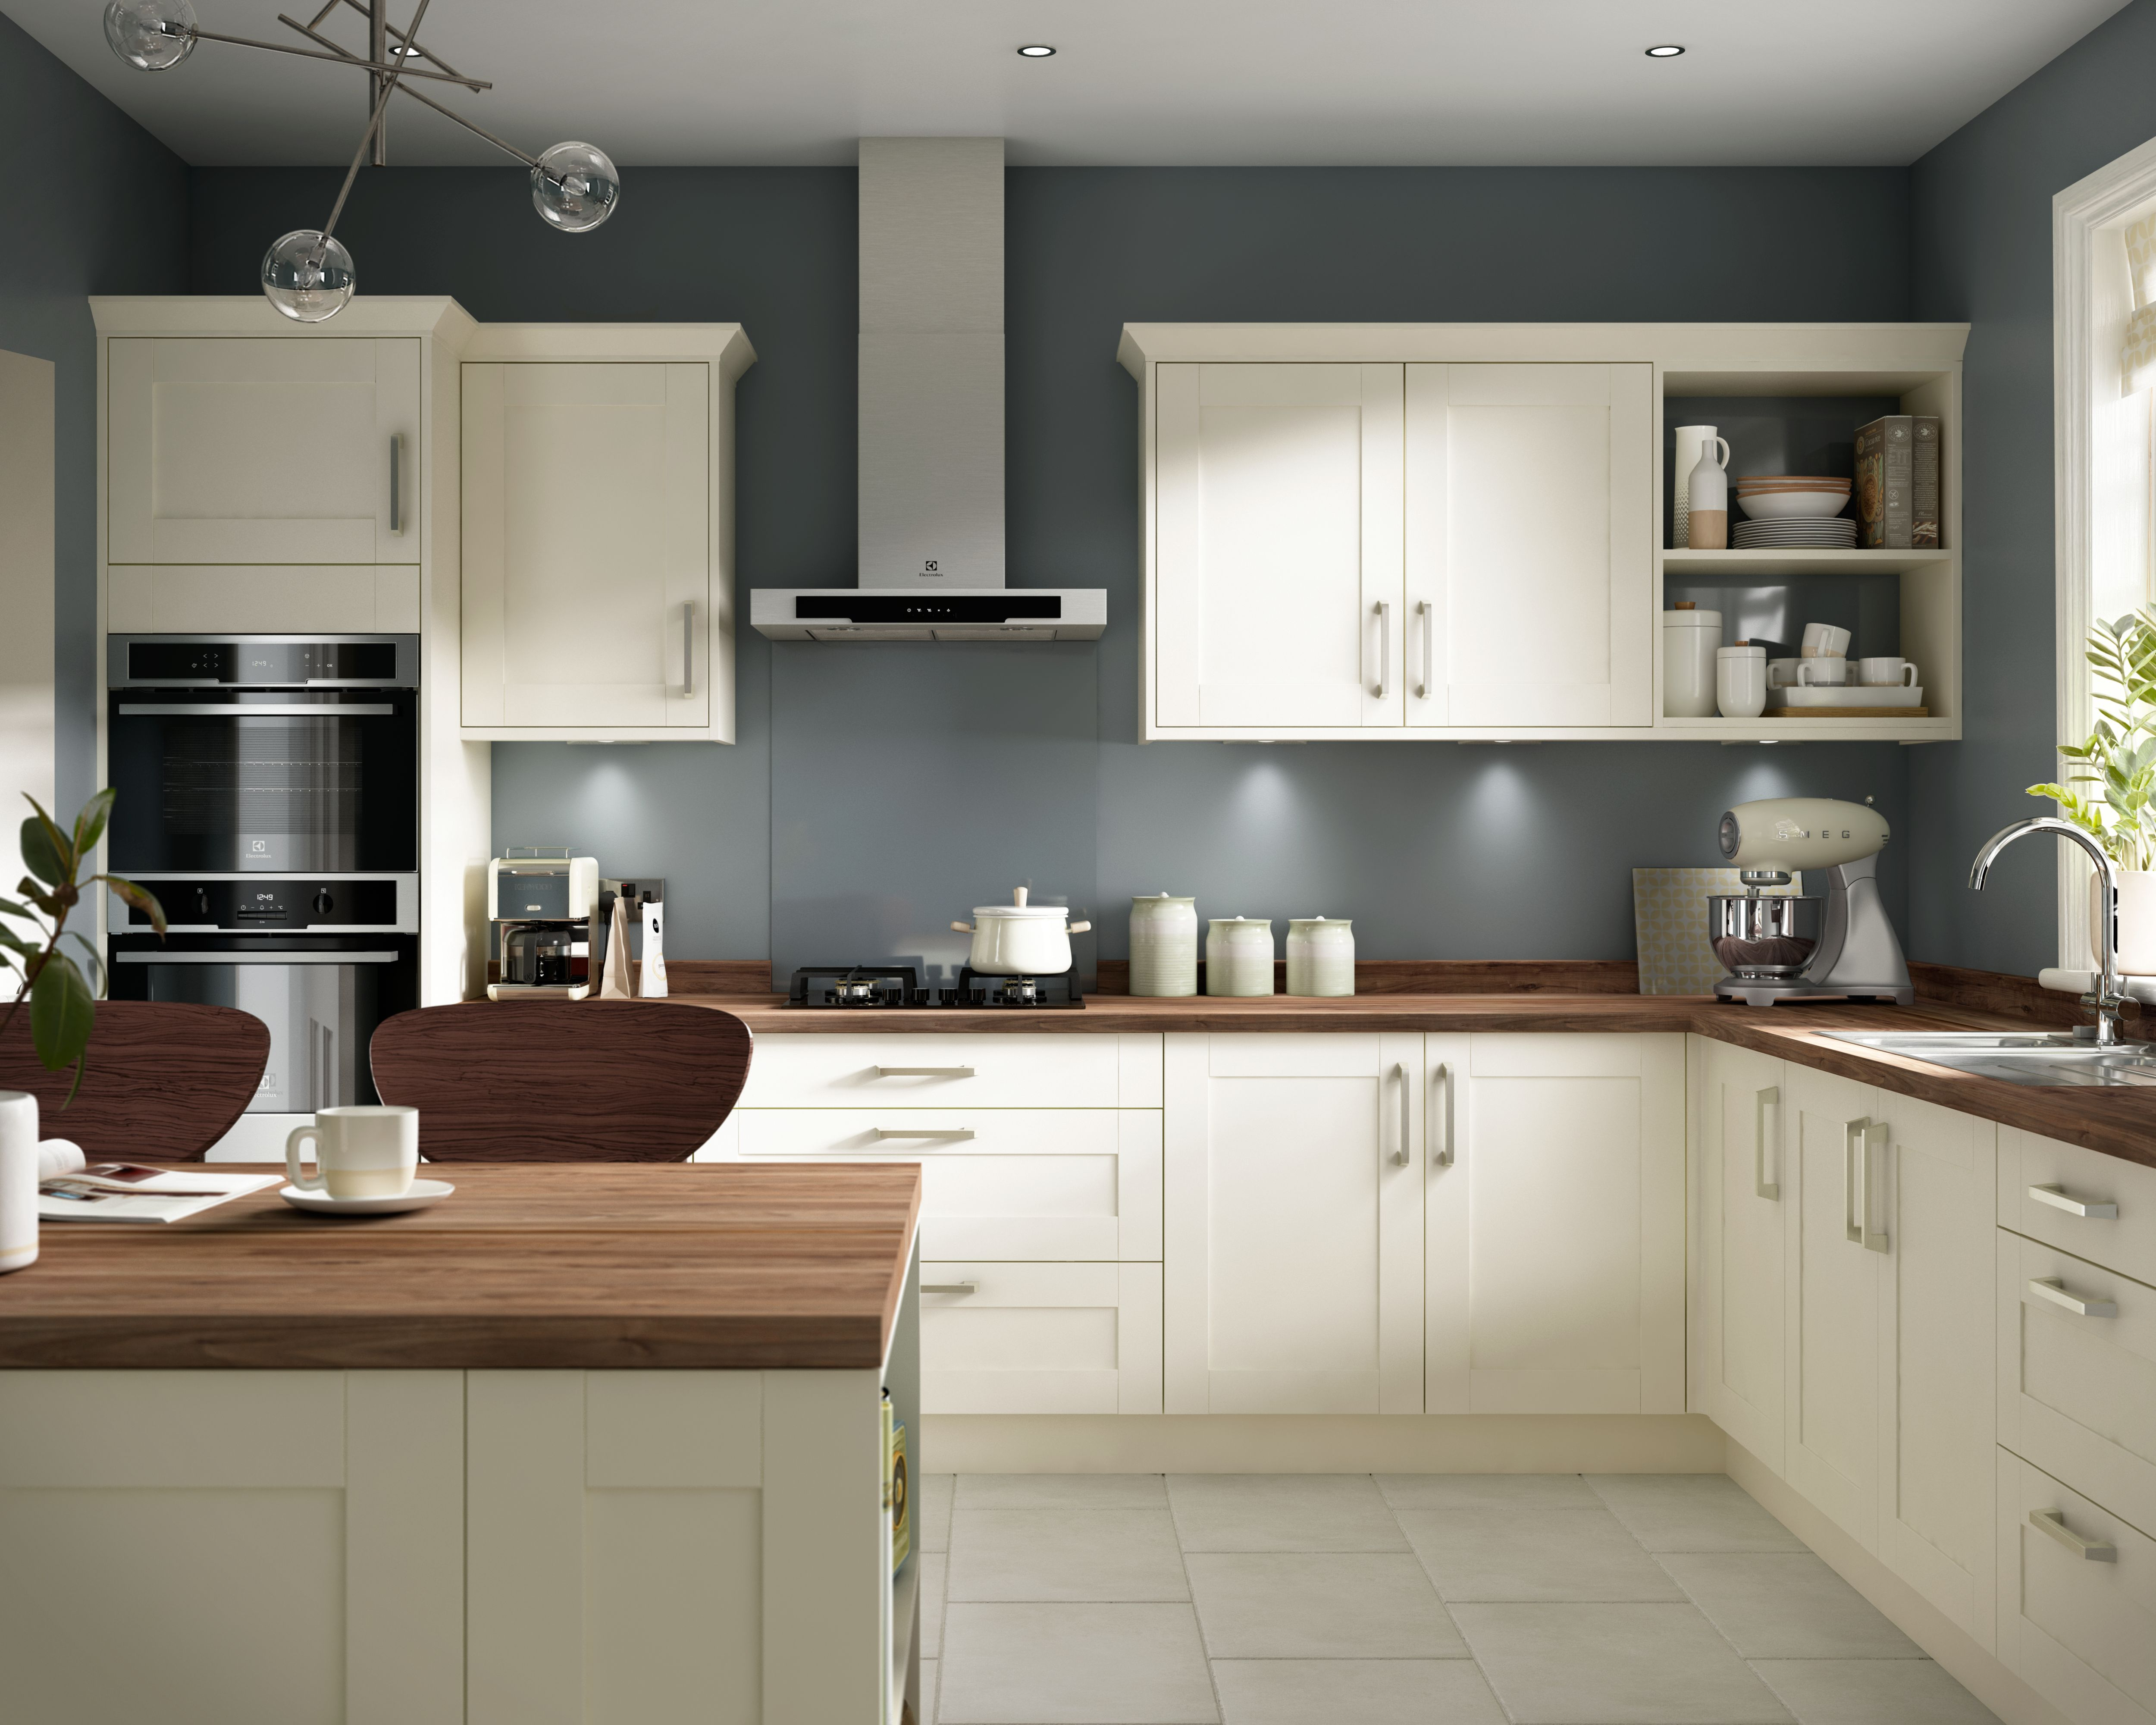 High Gloss Kitchen Cabinet Doors Uk Kitchen Gallery | Wickes.co.uk